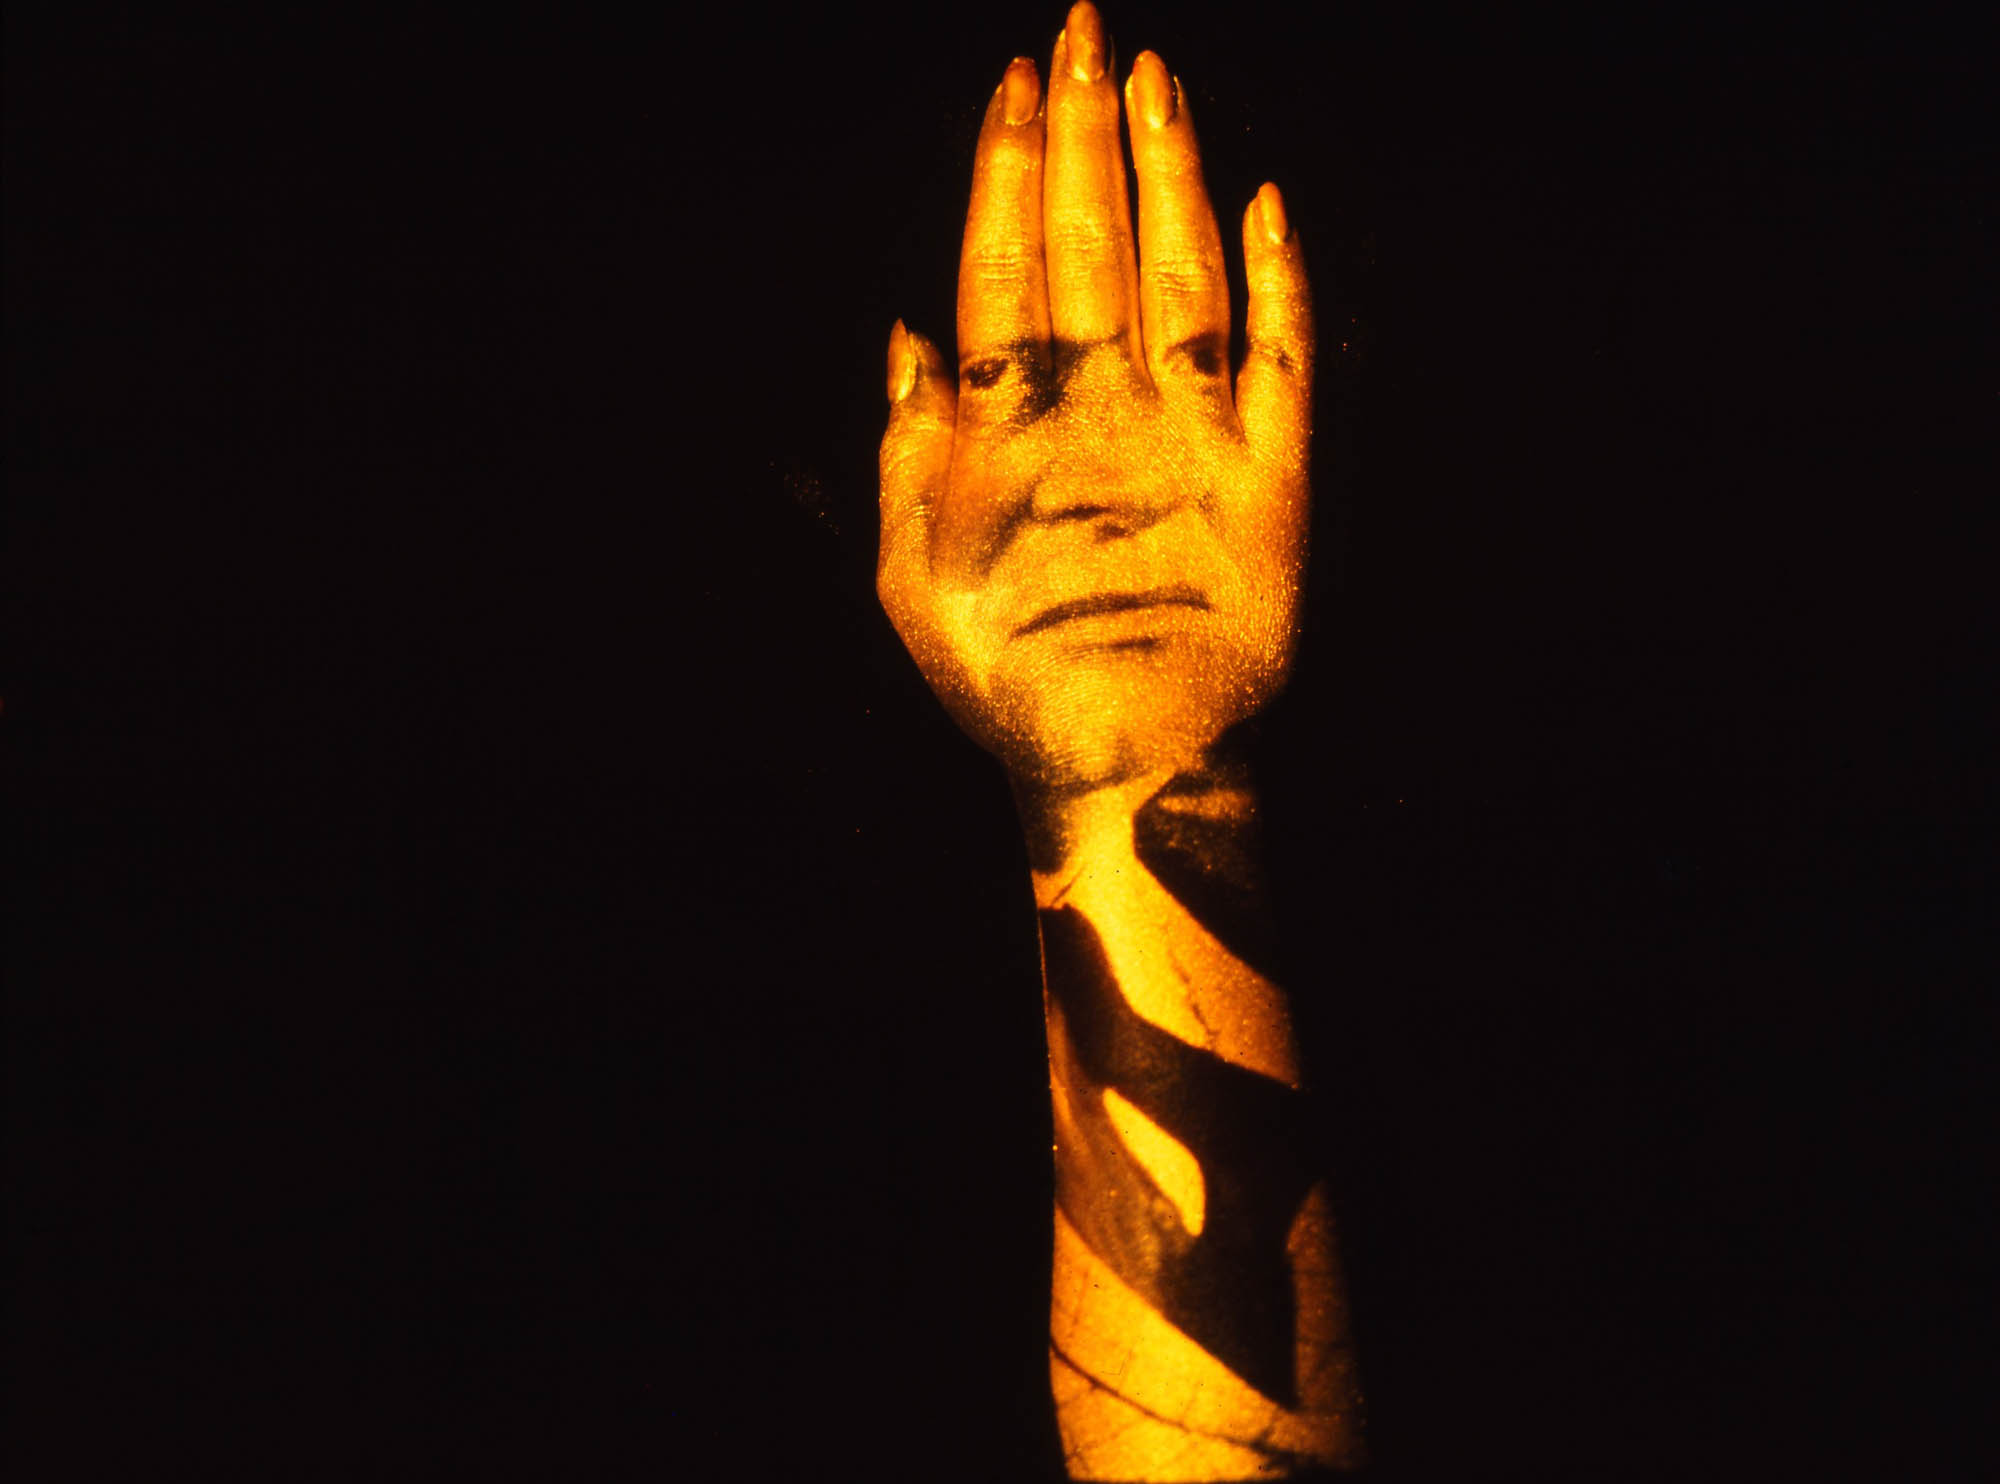 Goldfinger Hand for poster_0004